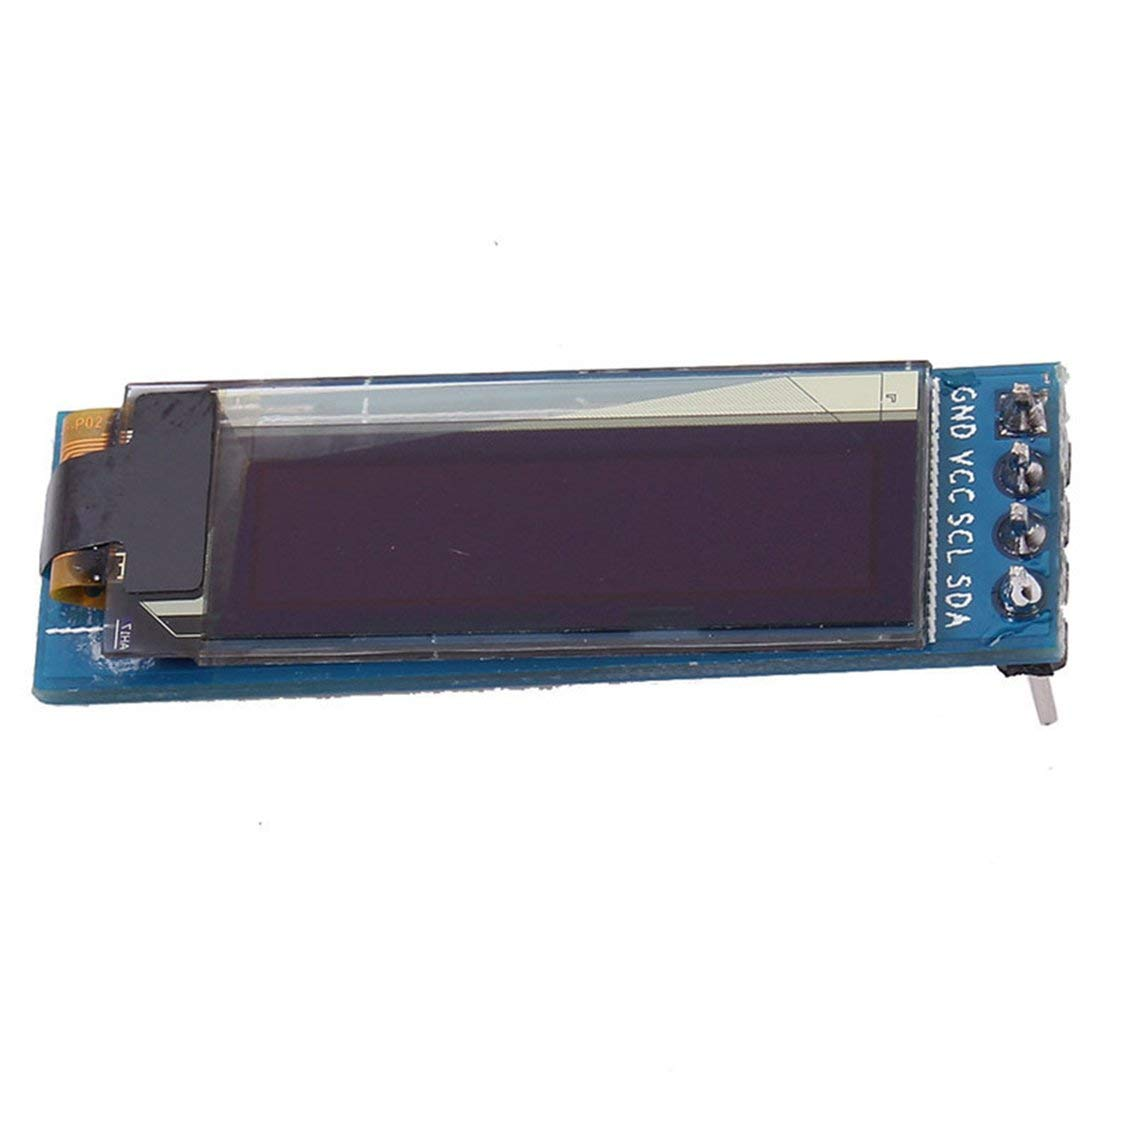 Iic I2c 0.91 128 x 32 White Oled Lcd Display Module 3.3v 5v For Arduino Pic 0.91 Inch Display Module White